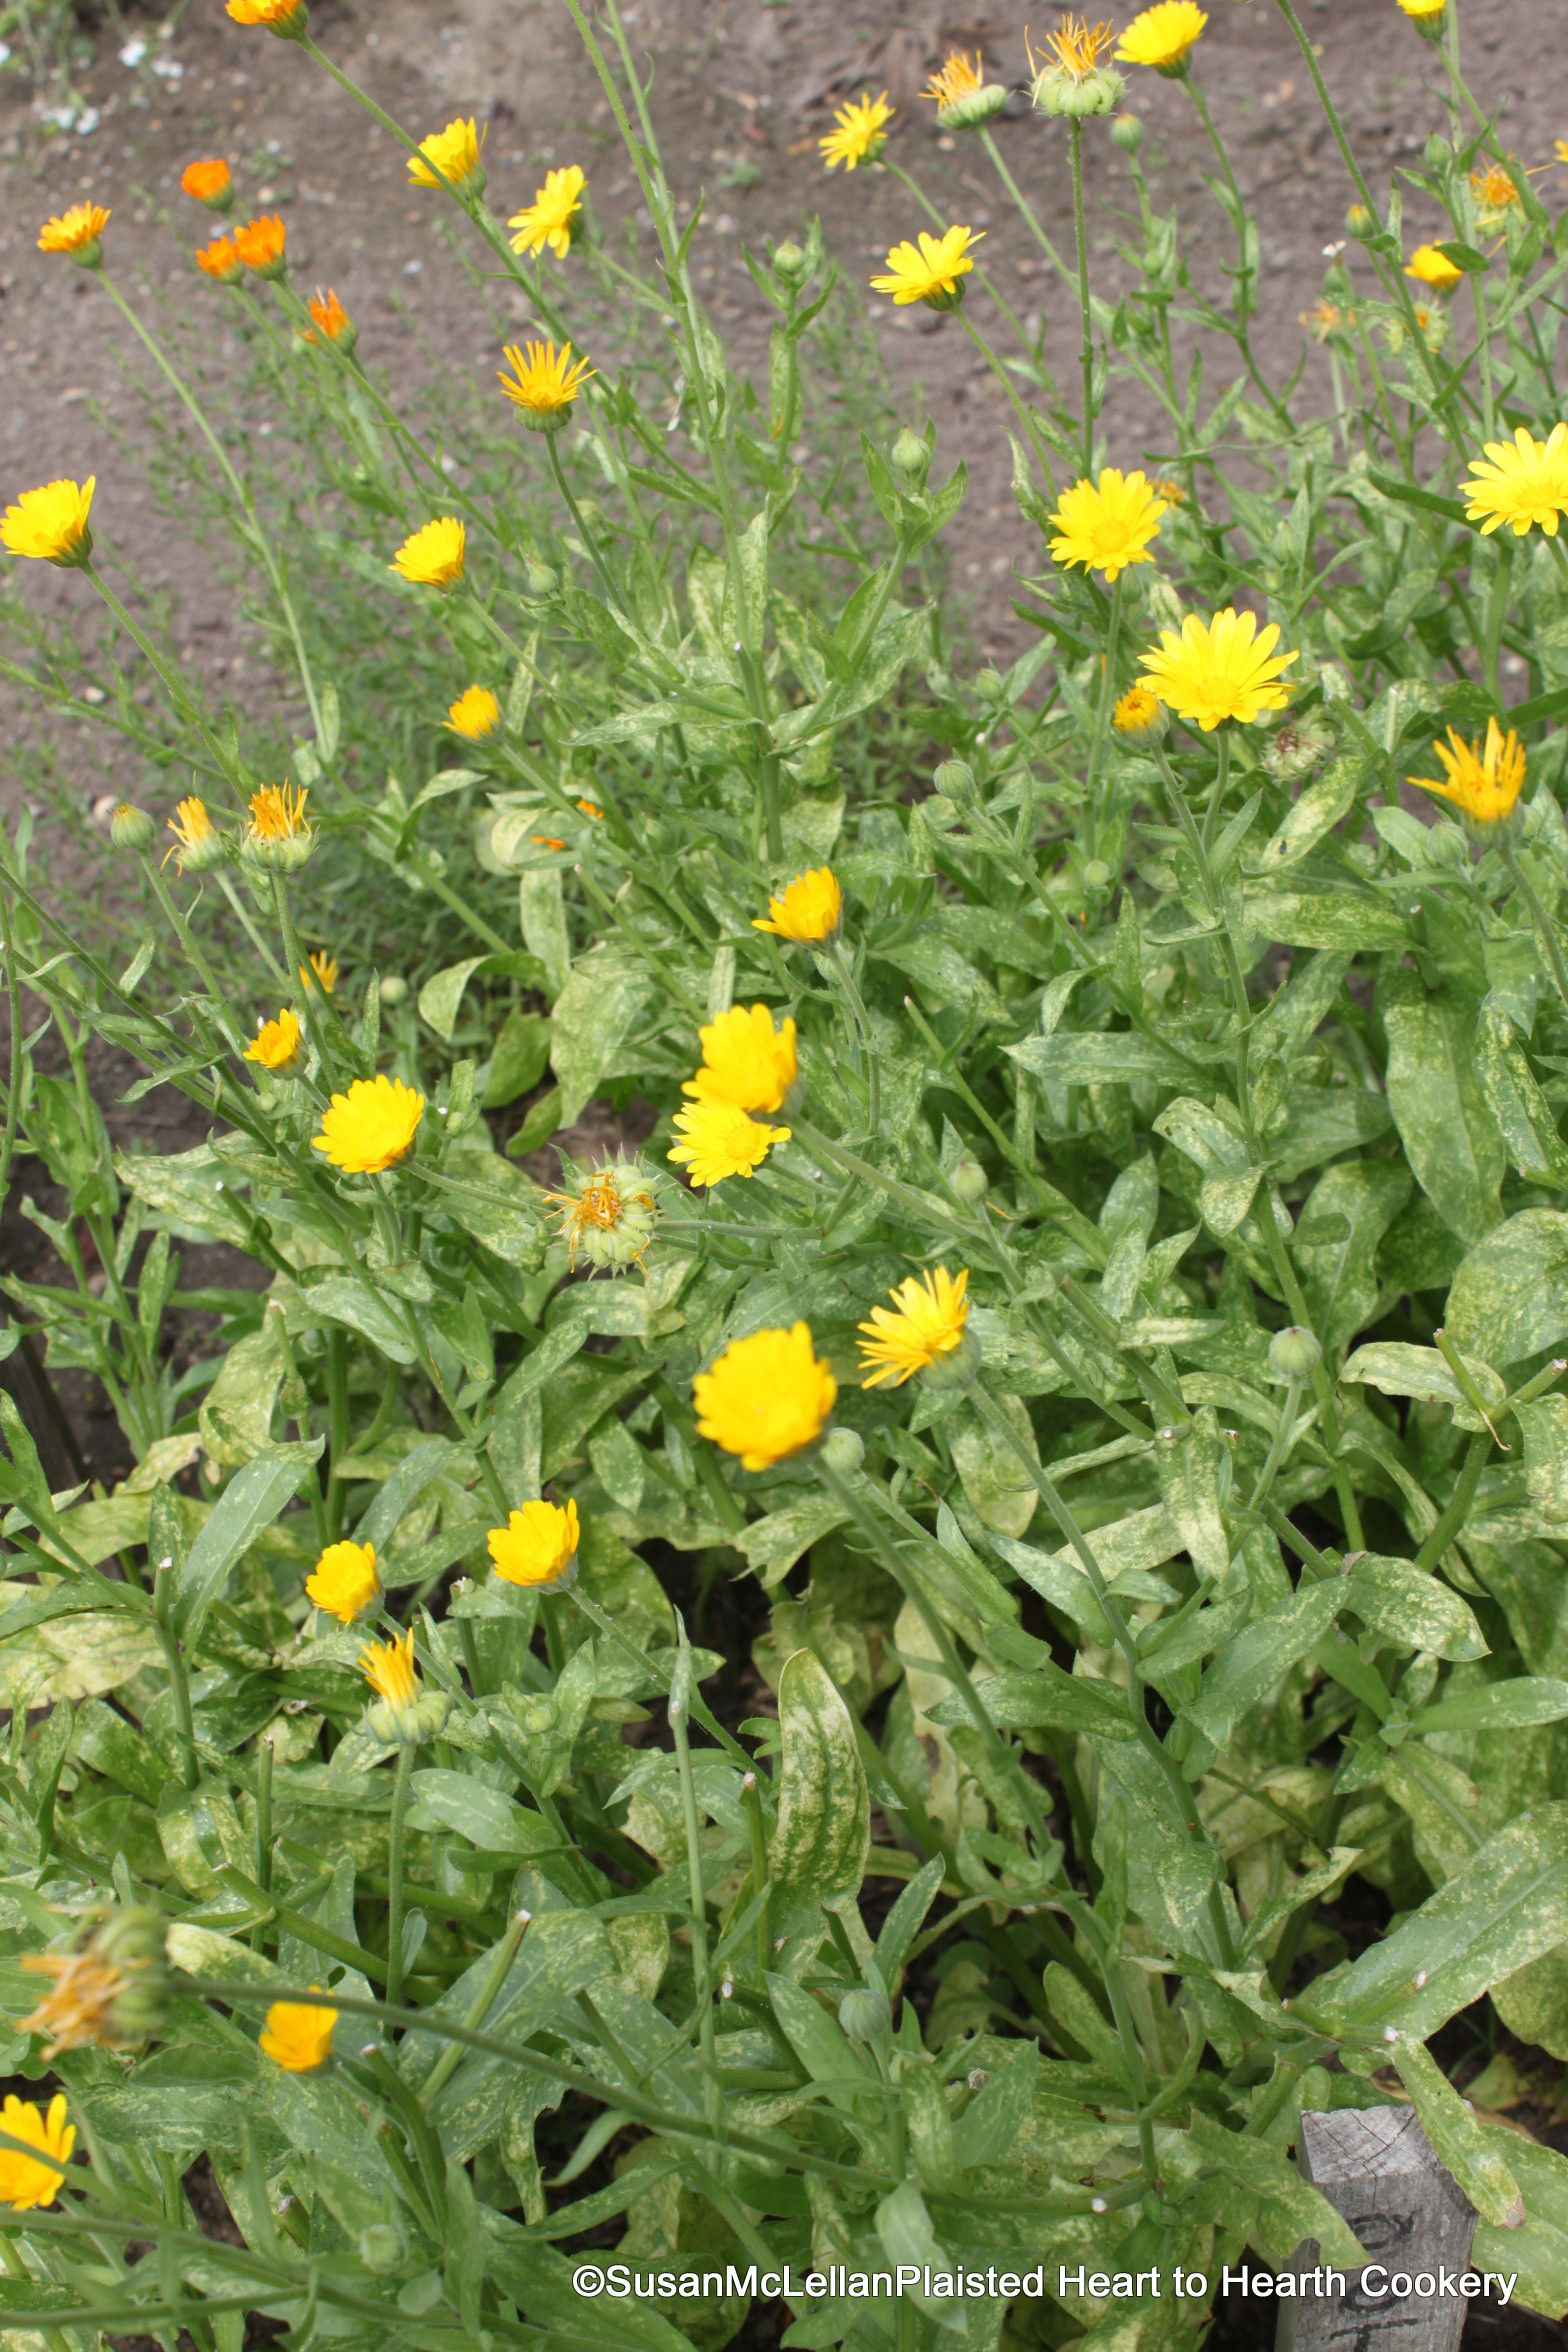 Bites of food history sharing my experimental archaeology of food the flowers of calendula officienalis pot marigold have both a history of culinary and medicinal uses in a niewe herball 1578 dodoens lyte writes it izmirmasajfo